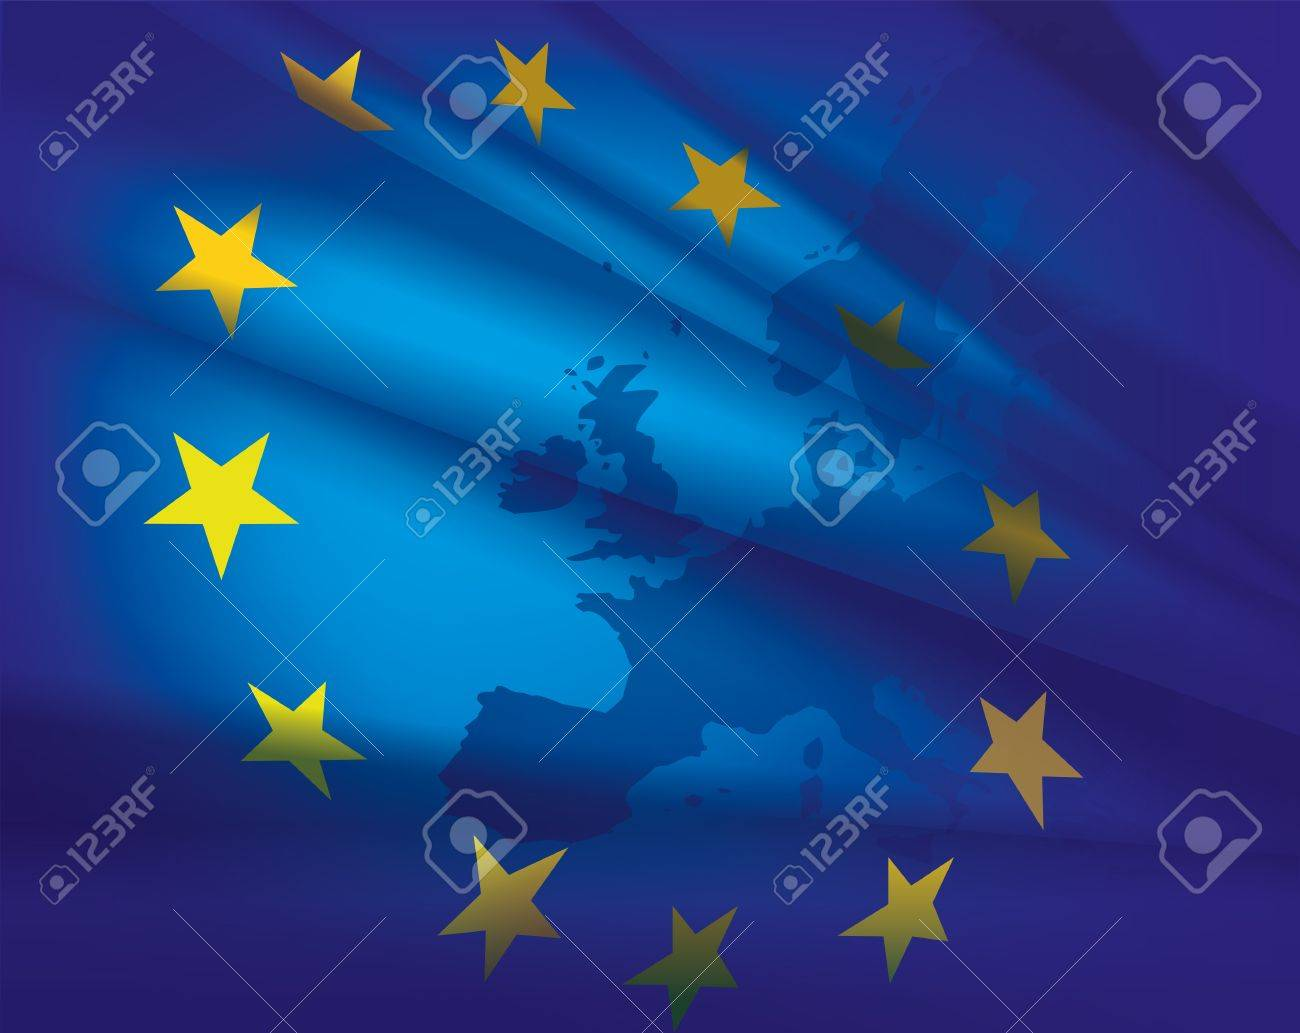 Europe map and flag - beautiful abstract blue collage background - 18990078